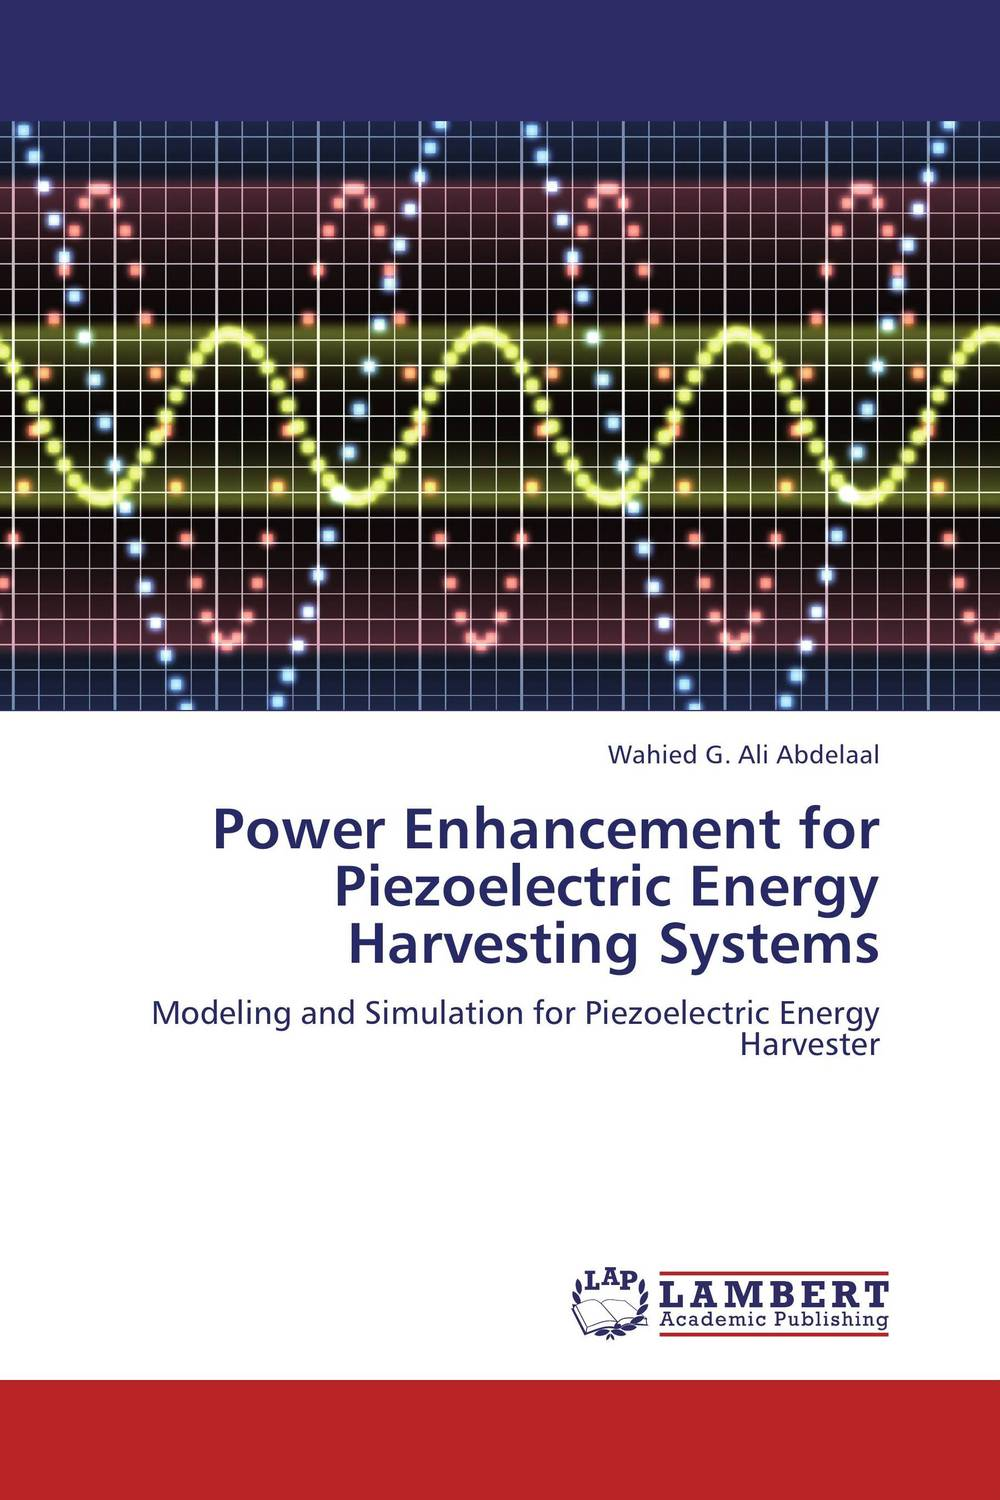 Power Enhancement for Piezoelectric Energy Harvesting Systems ayman eltaliawy hassan mostafa and yehea ismail circuit design techniques for microscale energy harvesting systems